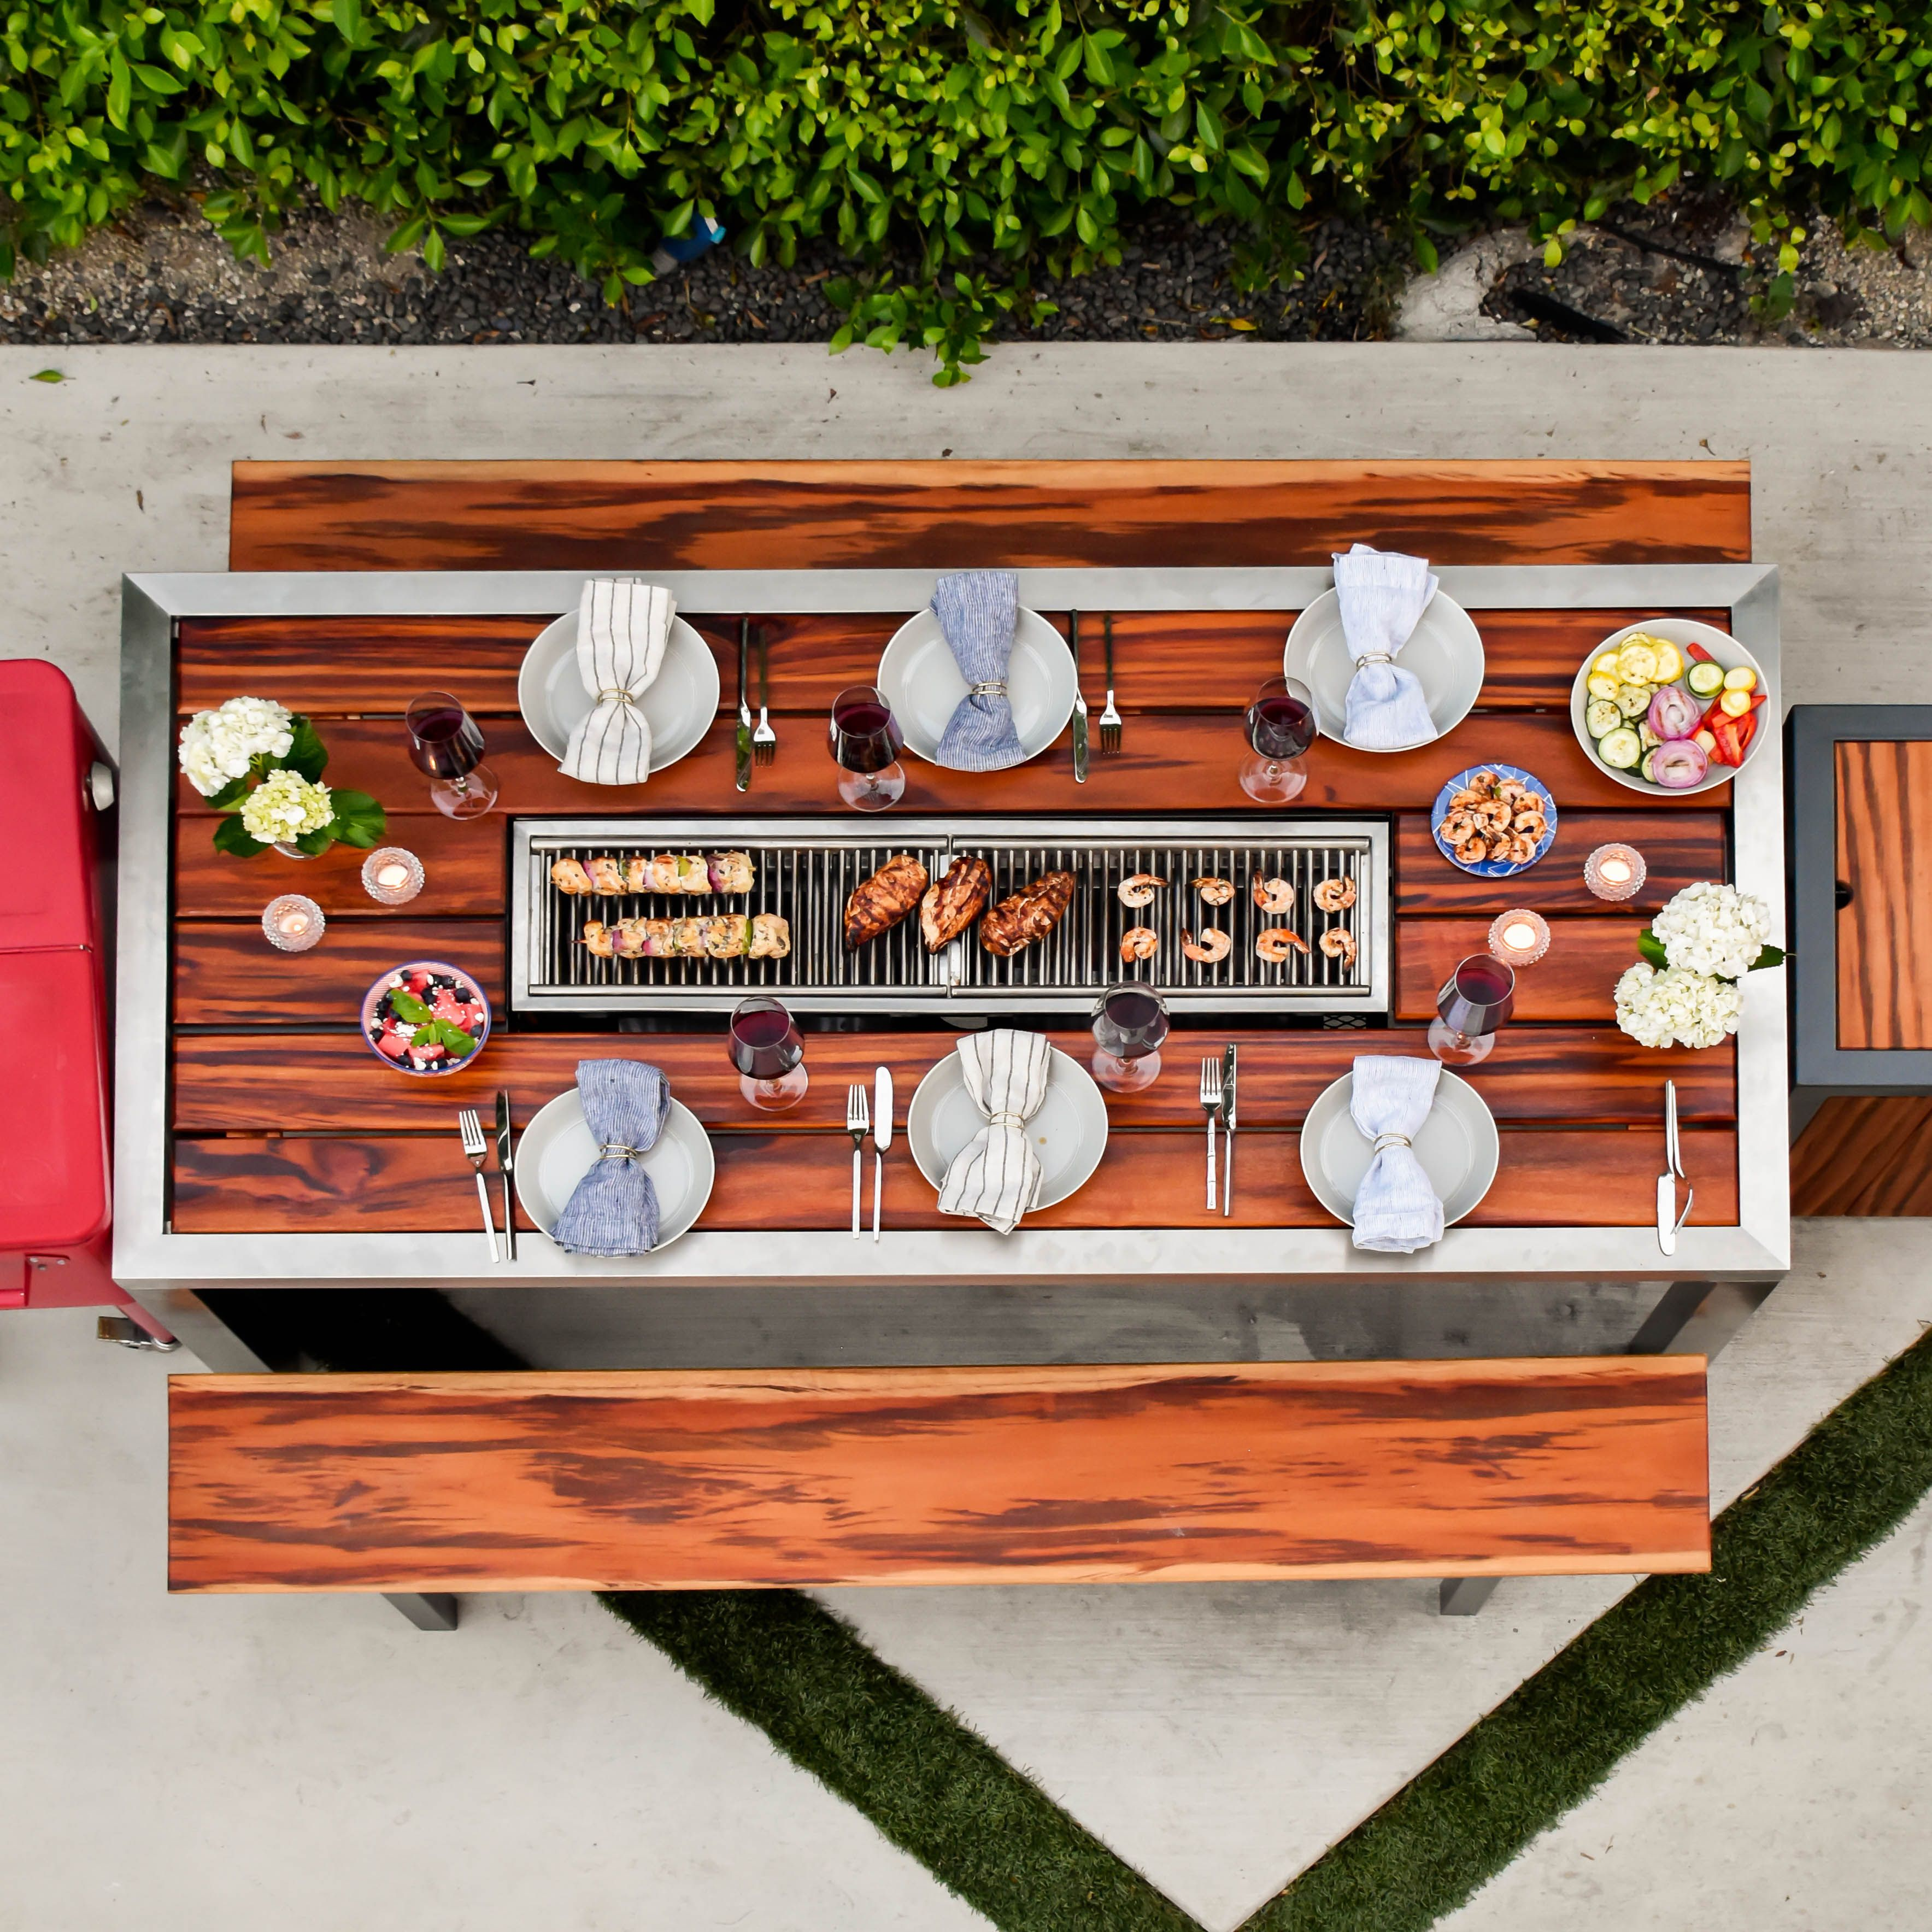 If You Ve Ever Eaten At A Korean Barbecue Or Japanese Teppanyaki Restaurant You Kno In 2020 Modern Outdoor Dining Table Outdoor Bbq Grill Patio Dining Table